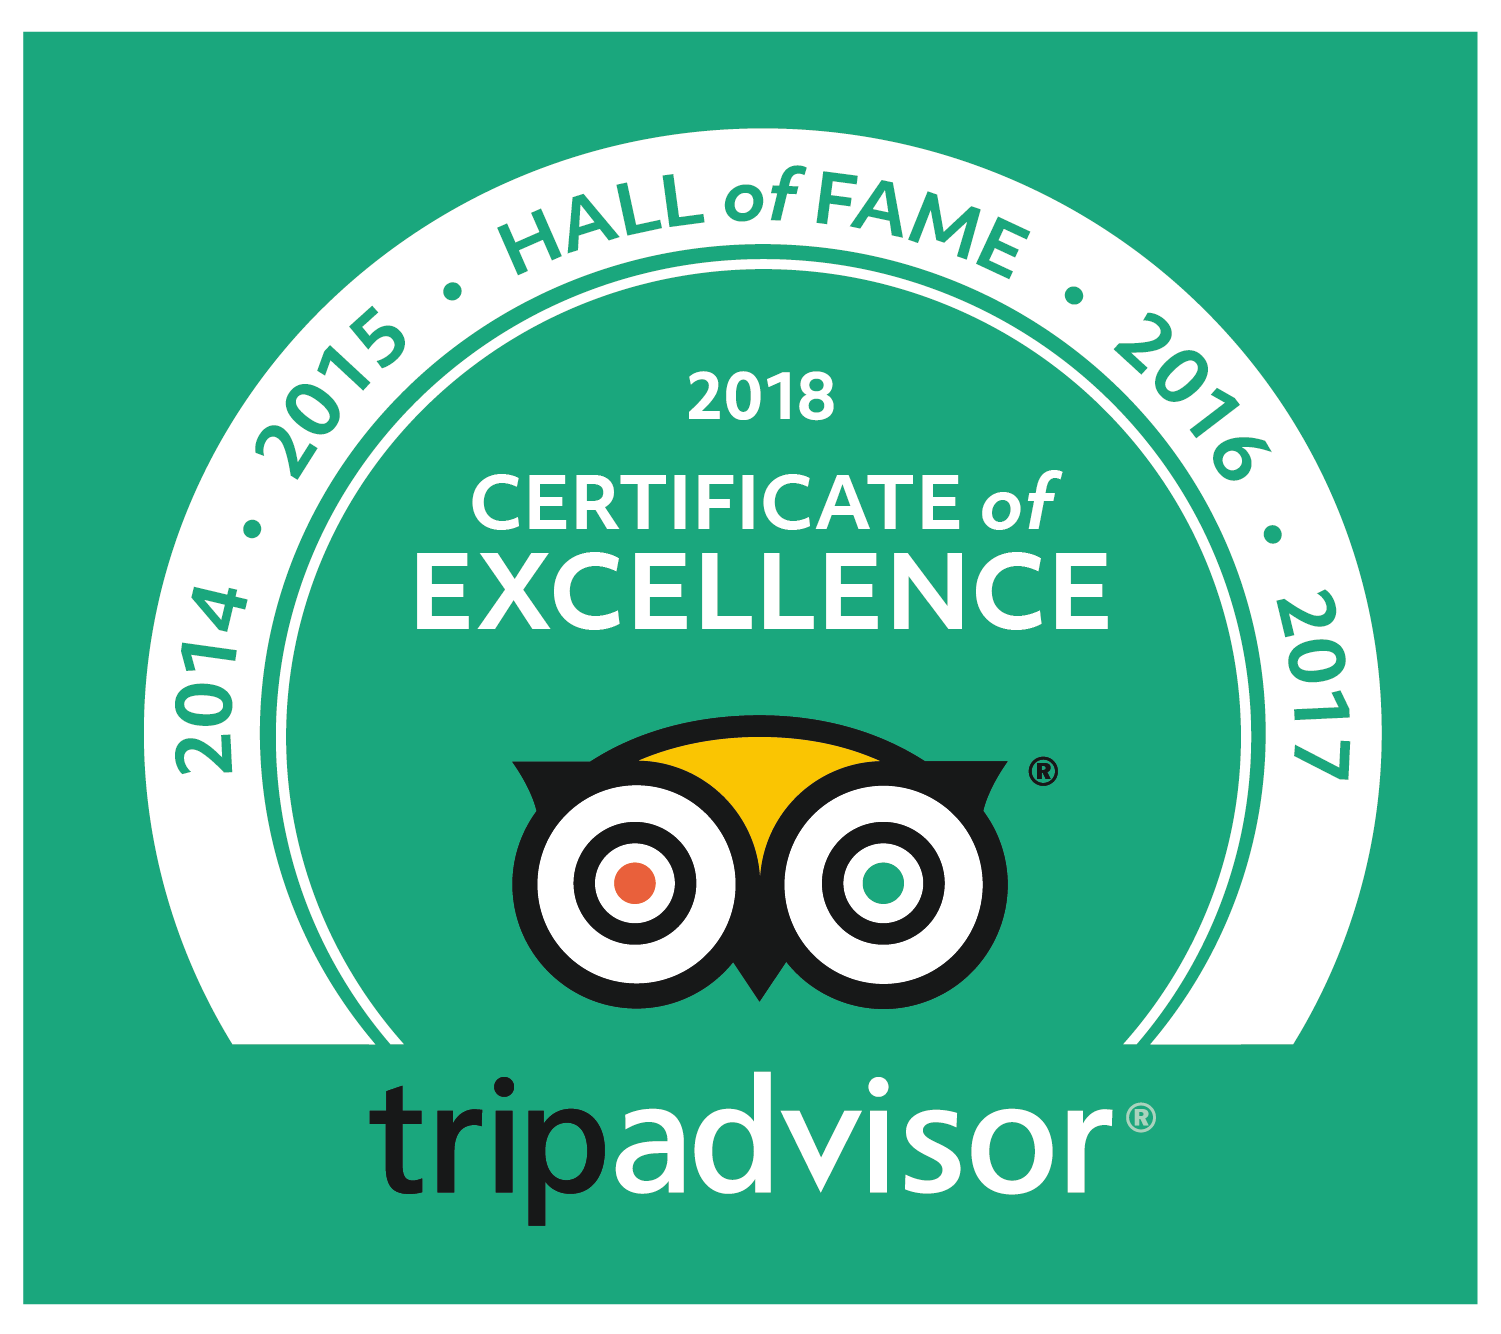 certificate of excellence hall of fame tripadvisor